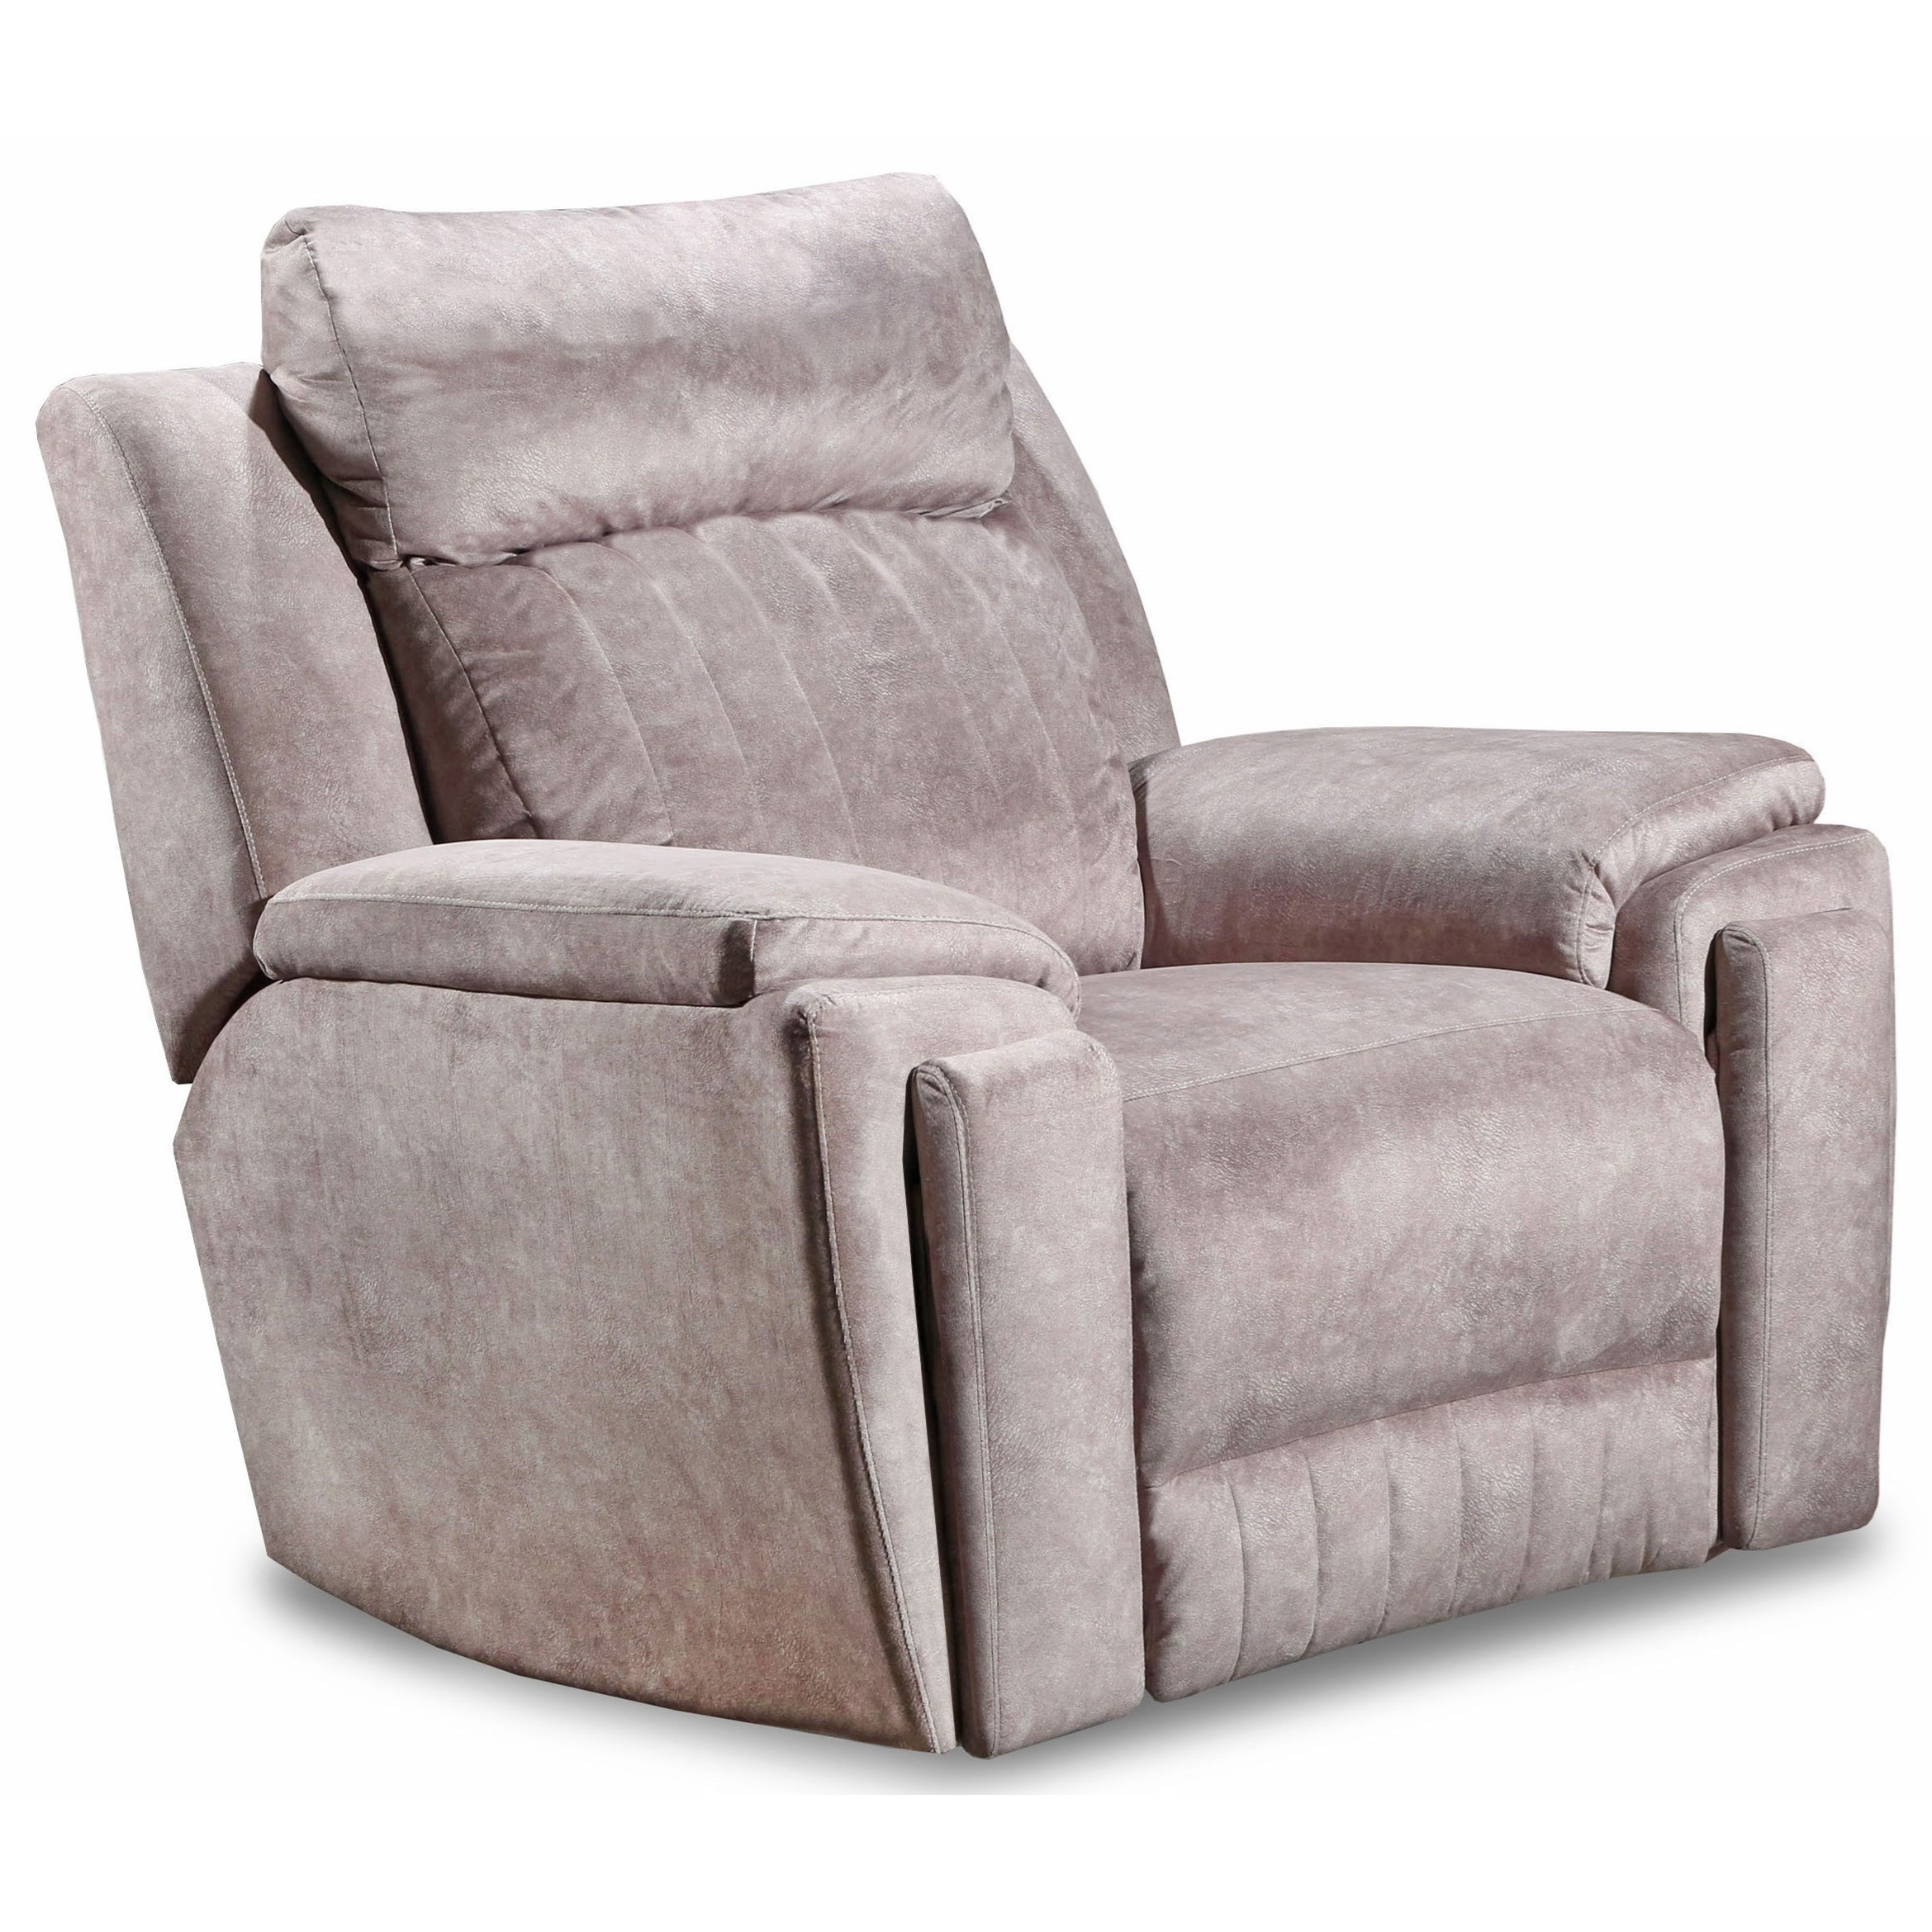 Silver Screen Wallhugger Recliner by Southern Motion at Suburban Furniture